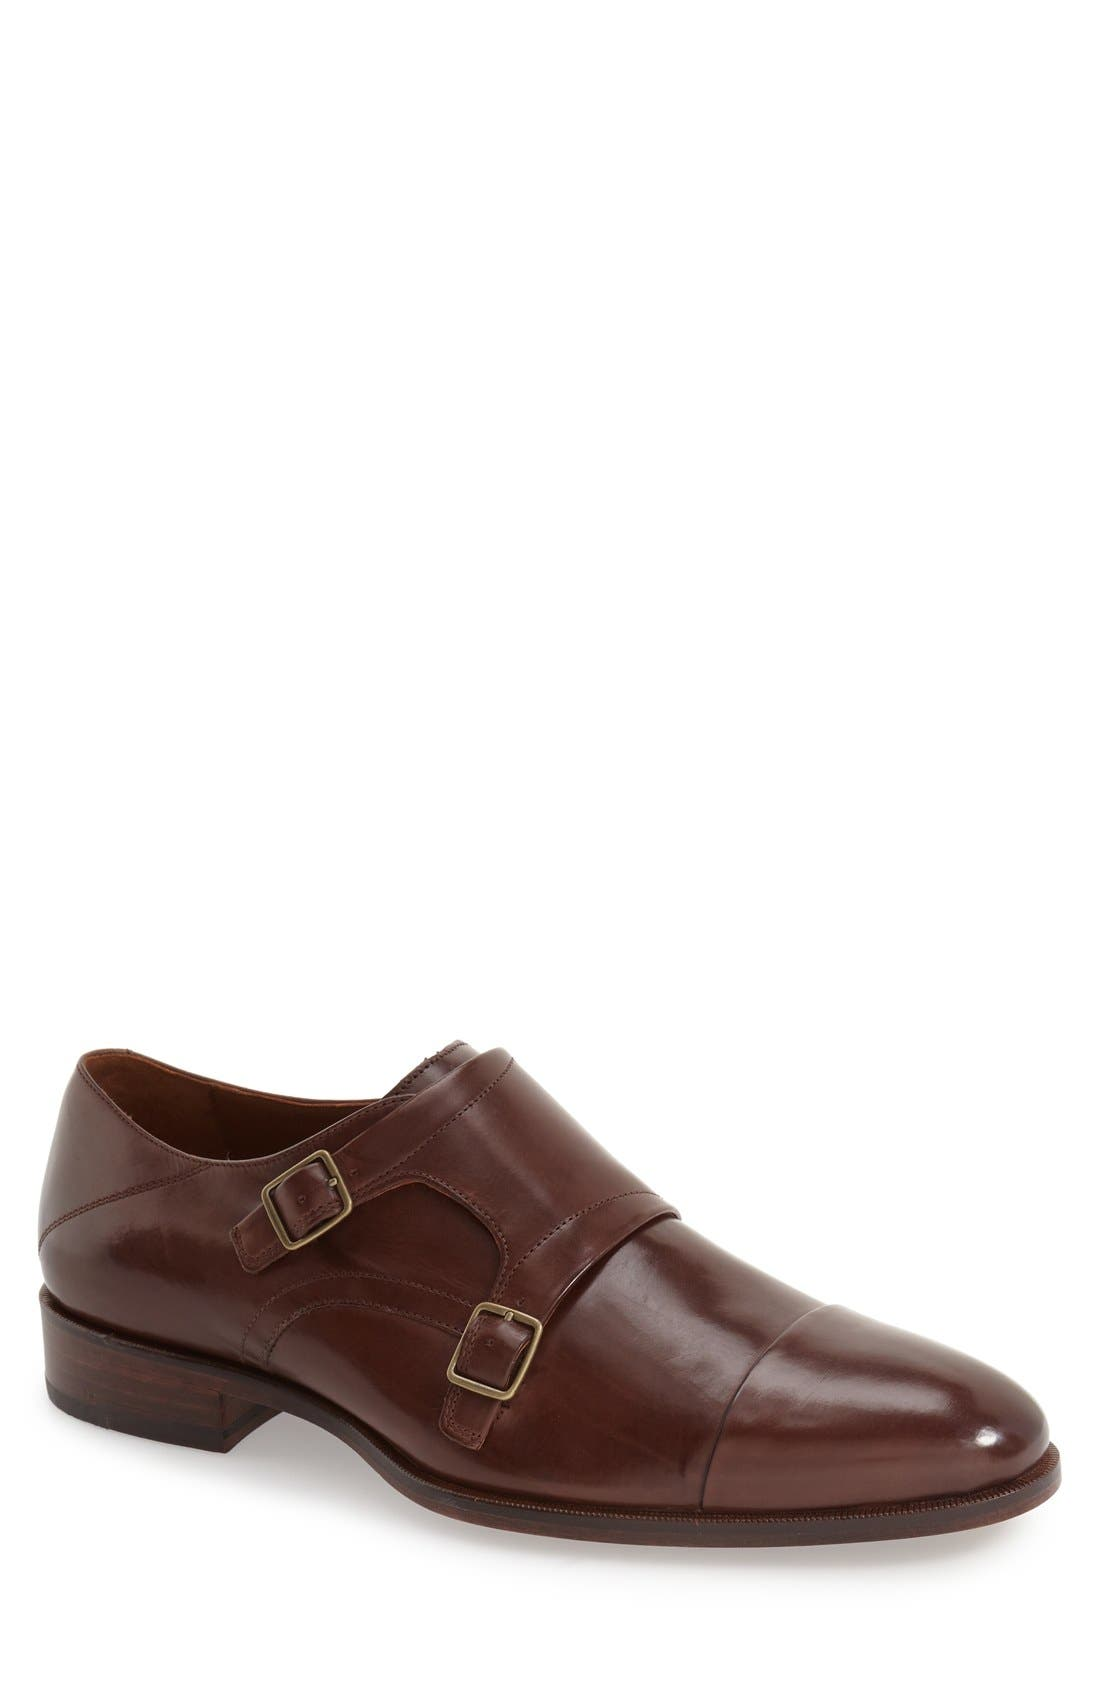 Alternate Image 1 Selected - Johnston & Murphy 'Nolen' Double Monk Strap Shoe (Men)